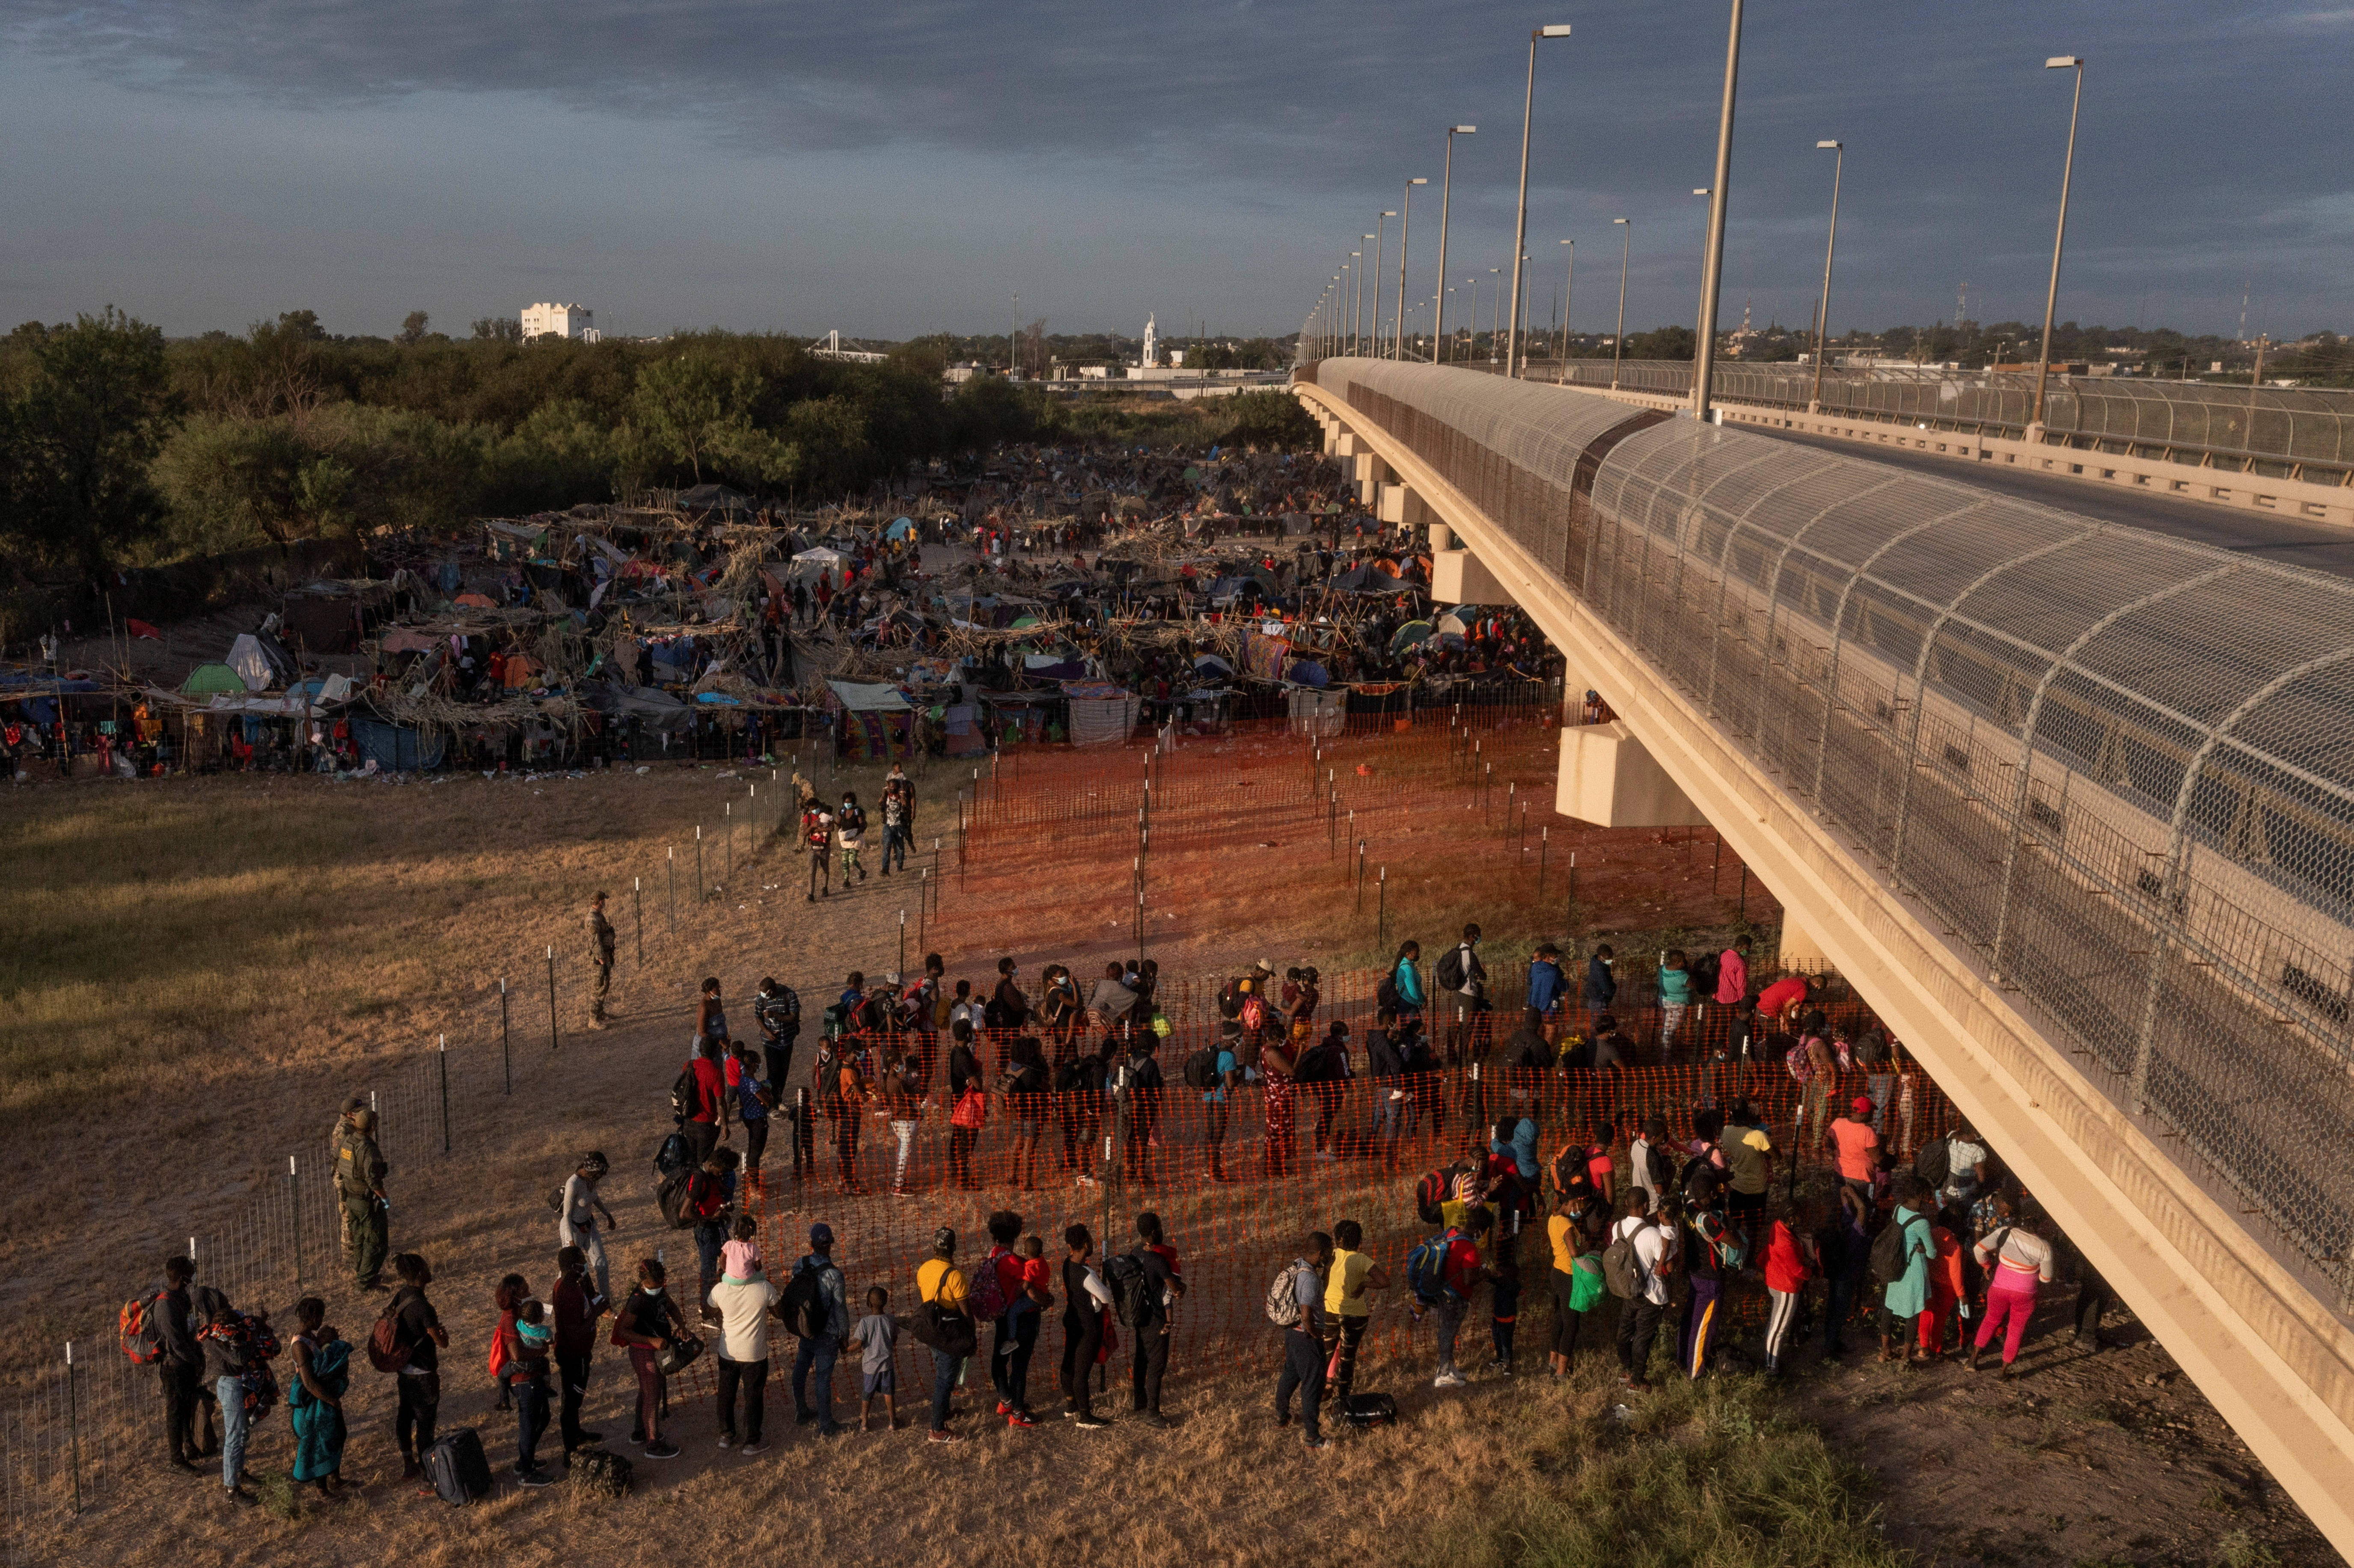 Migrants stand in line while awaiting transport out of a border makeshift camp along the International Bridge in Del Rio, Texas, U.S., September 22, 2021. Picture taken with a drone. REUTERS/Adrees Latif